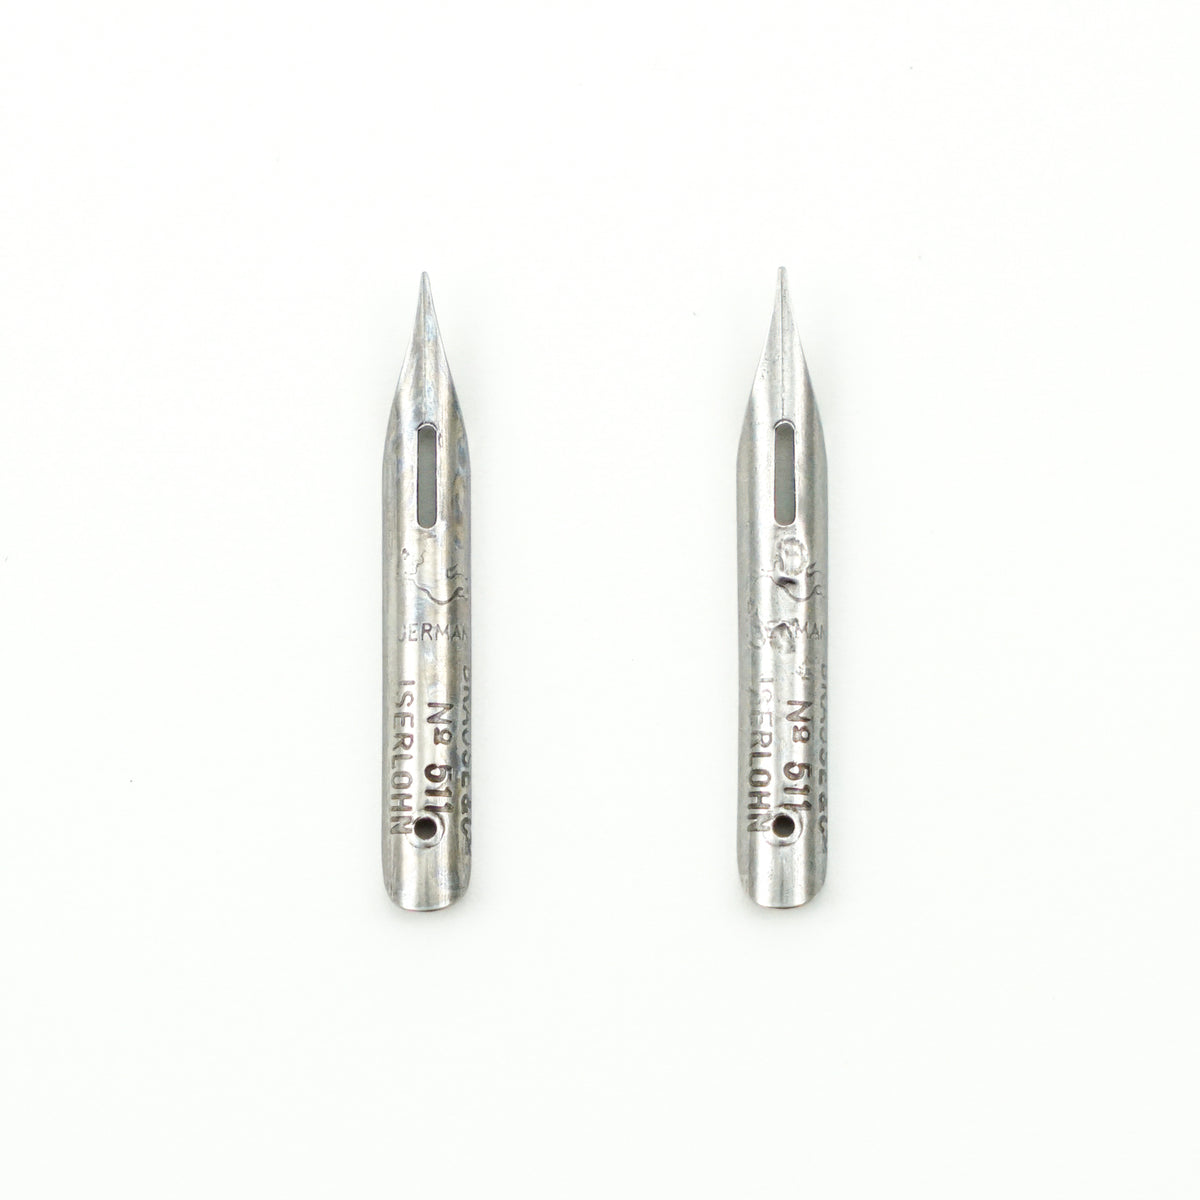 Brause 511 Drawing / Calligraphy Nibs - 2/pack